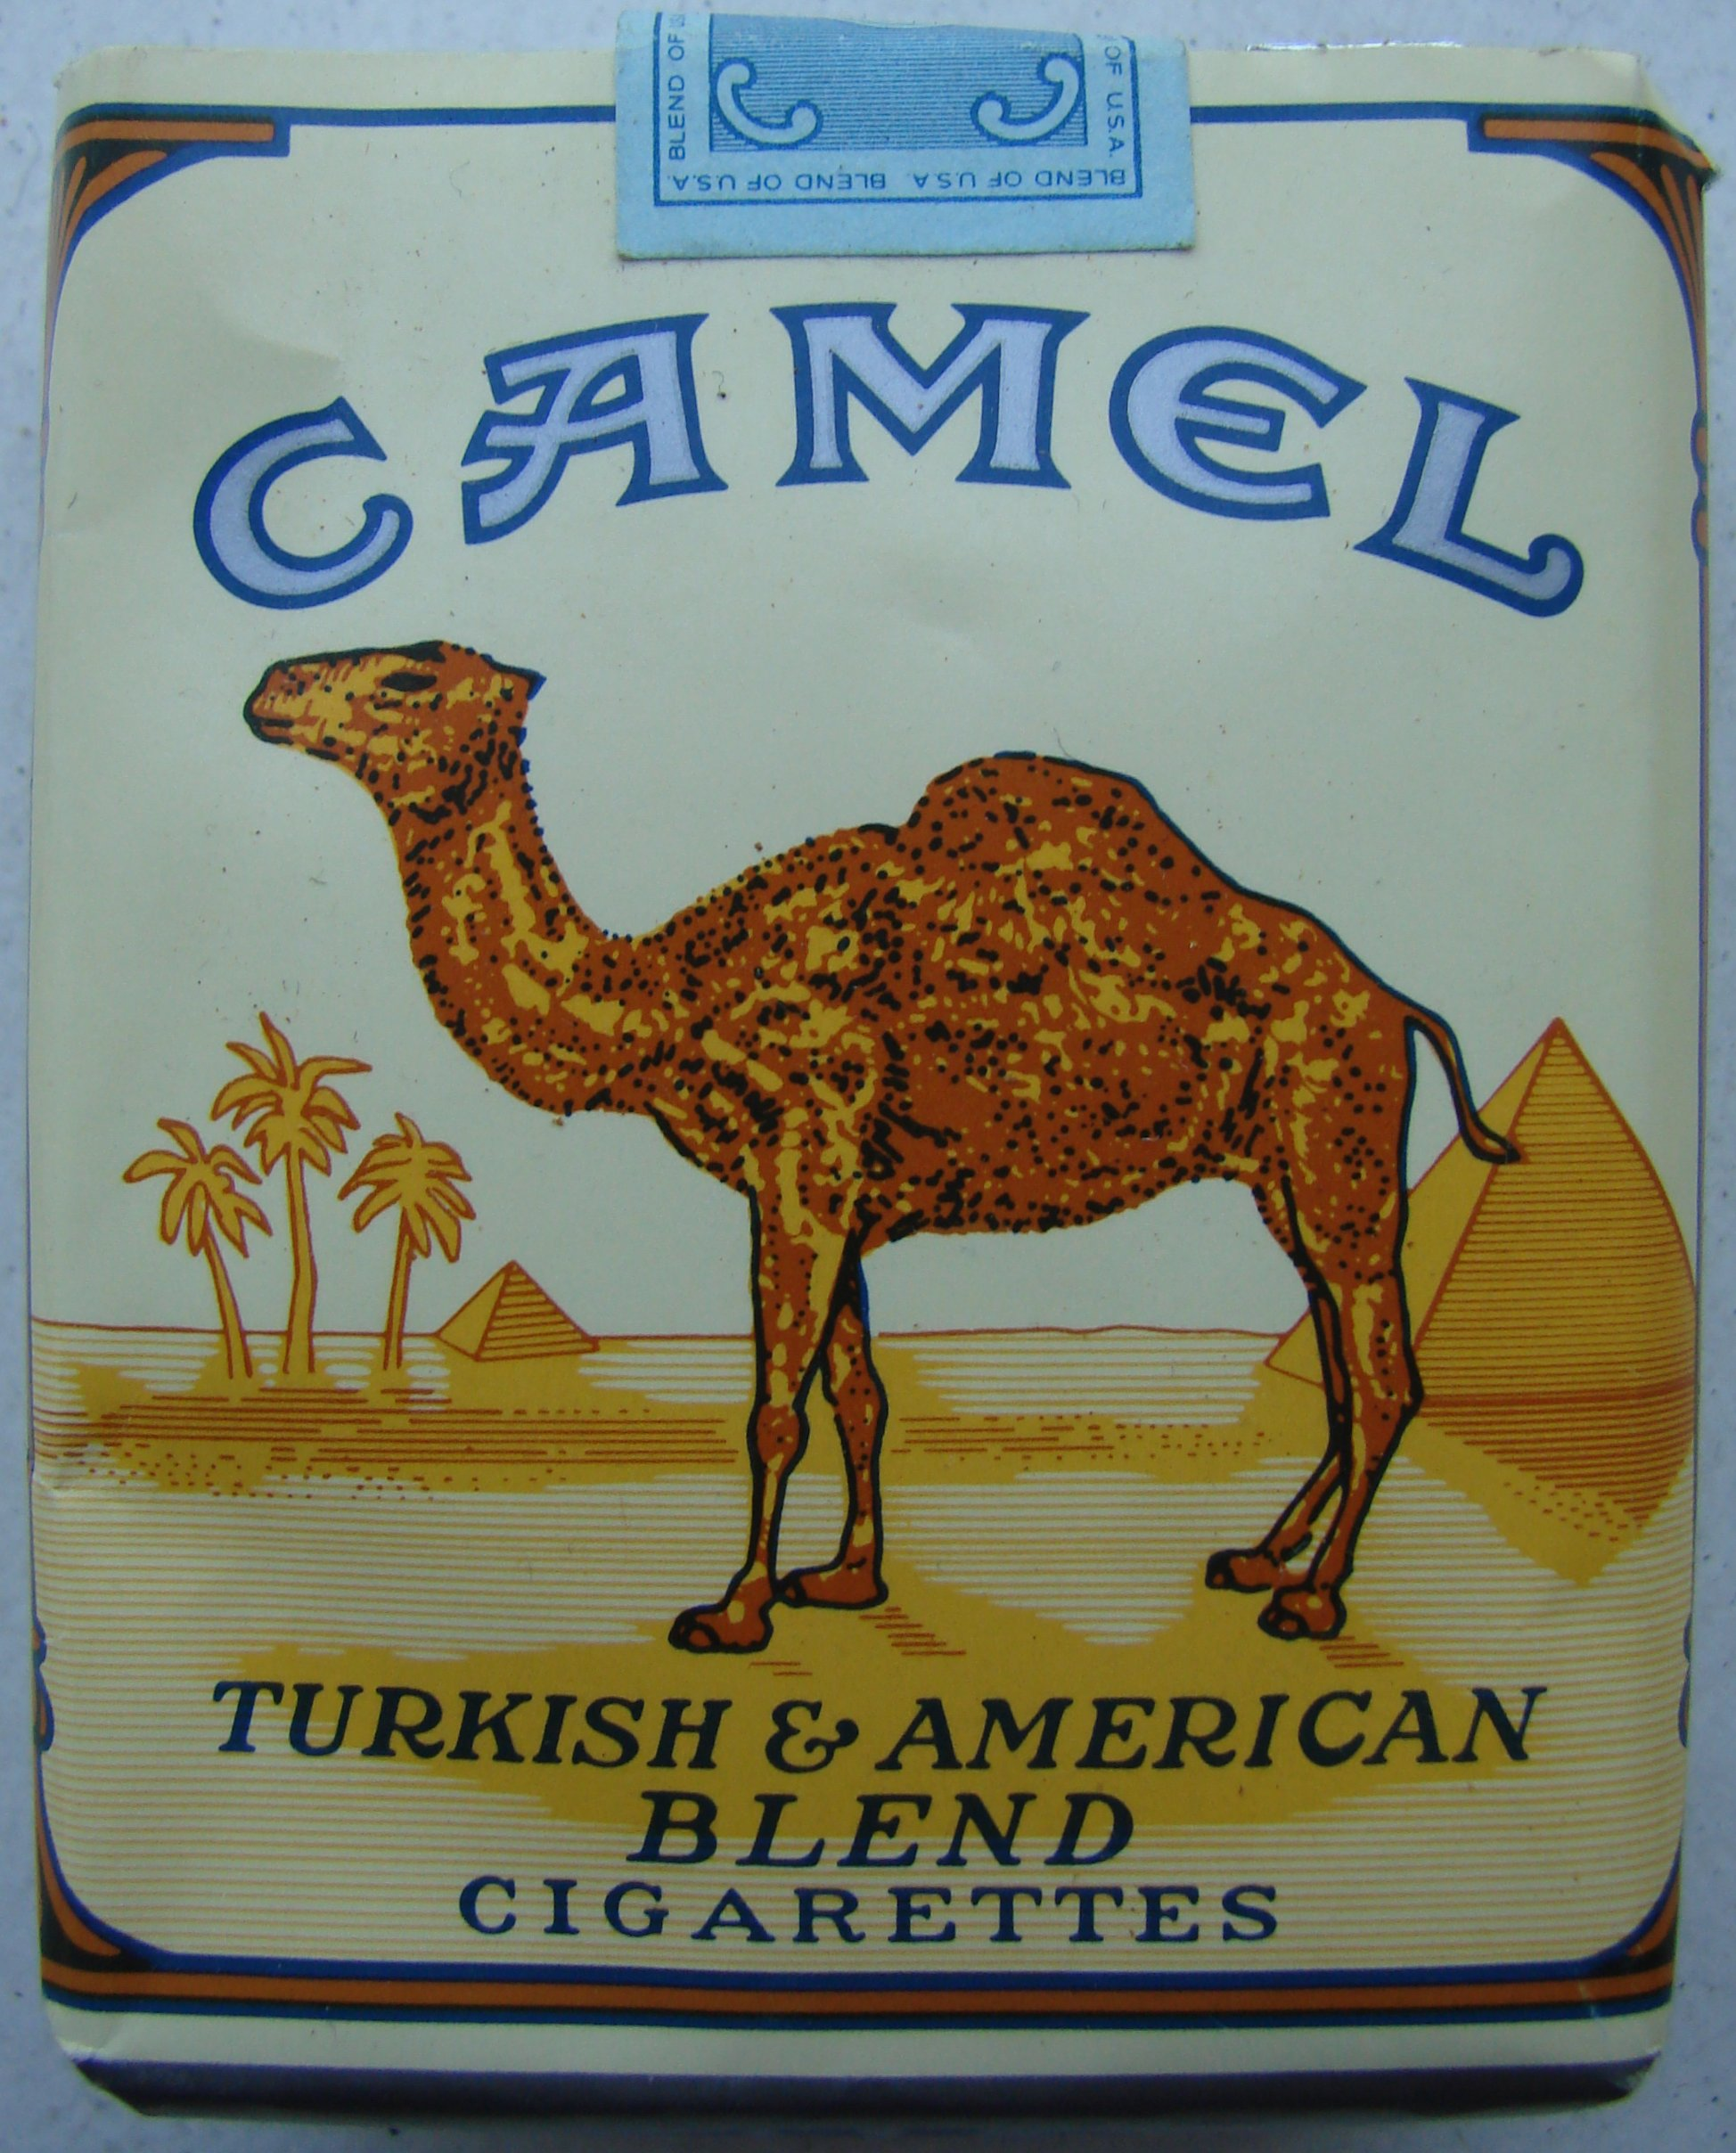 https://dic.academic.ru/pictures/wiki/files/80/Pack_of_camel.jpg